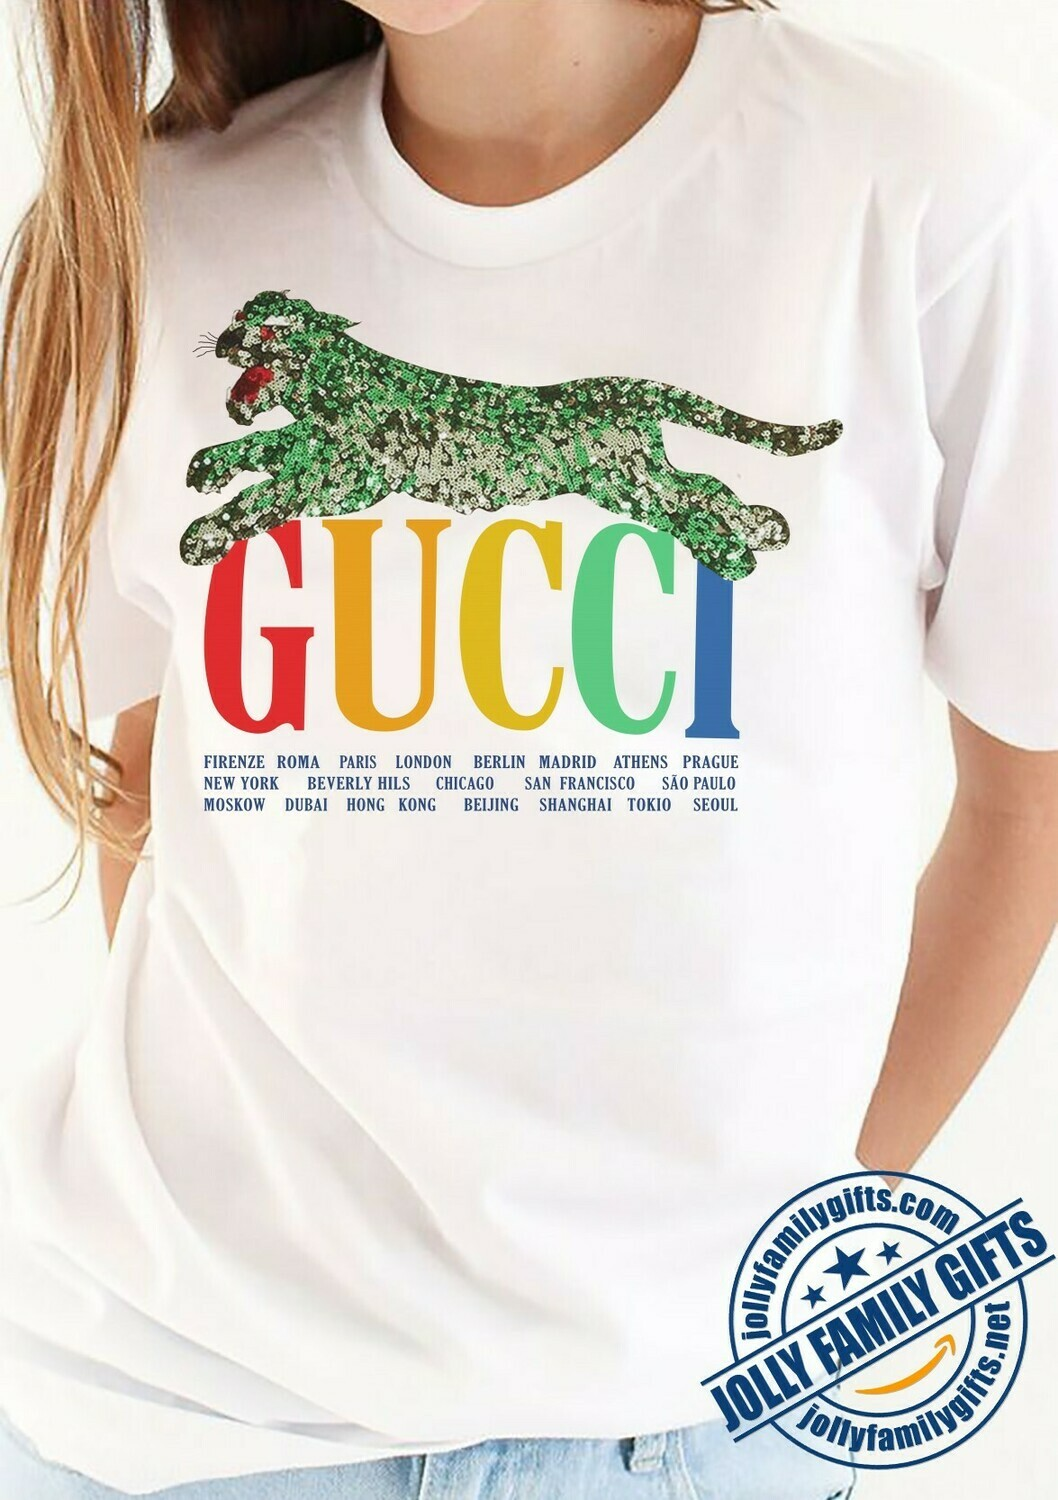 Classic Logo Leopard Gucci,Gucci Shirt,Gucci T-shirt,Gucci Logo,Gucci Fashion shirt,Fashion shirt,Gucci Design,Snake Gucci vintage shirt Unisex T-Shirt Hoodie Sweatshirt Sweater for Ladies Women Men